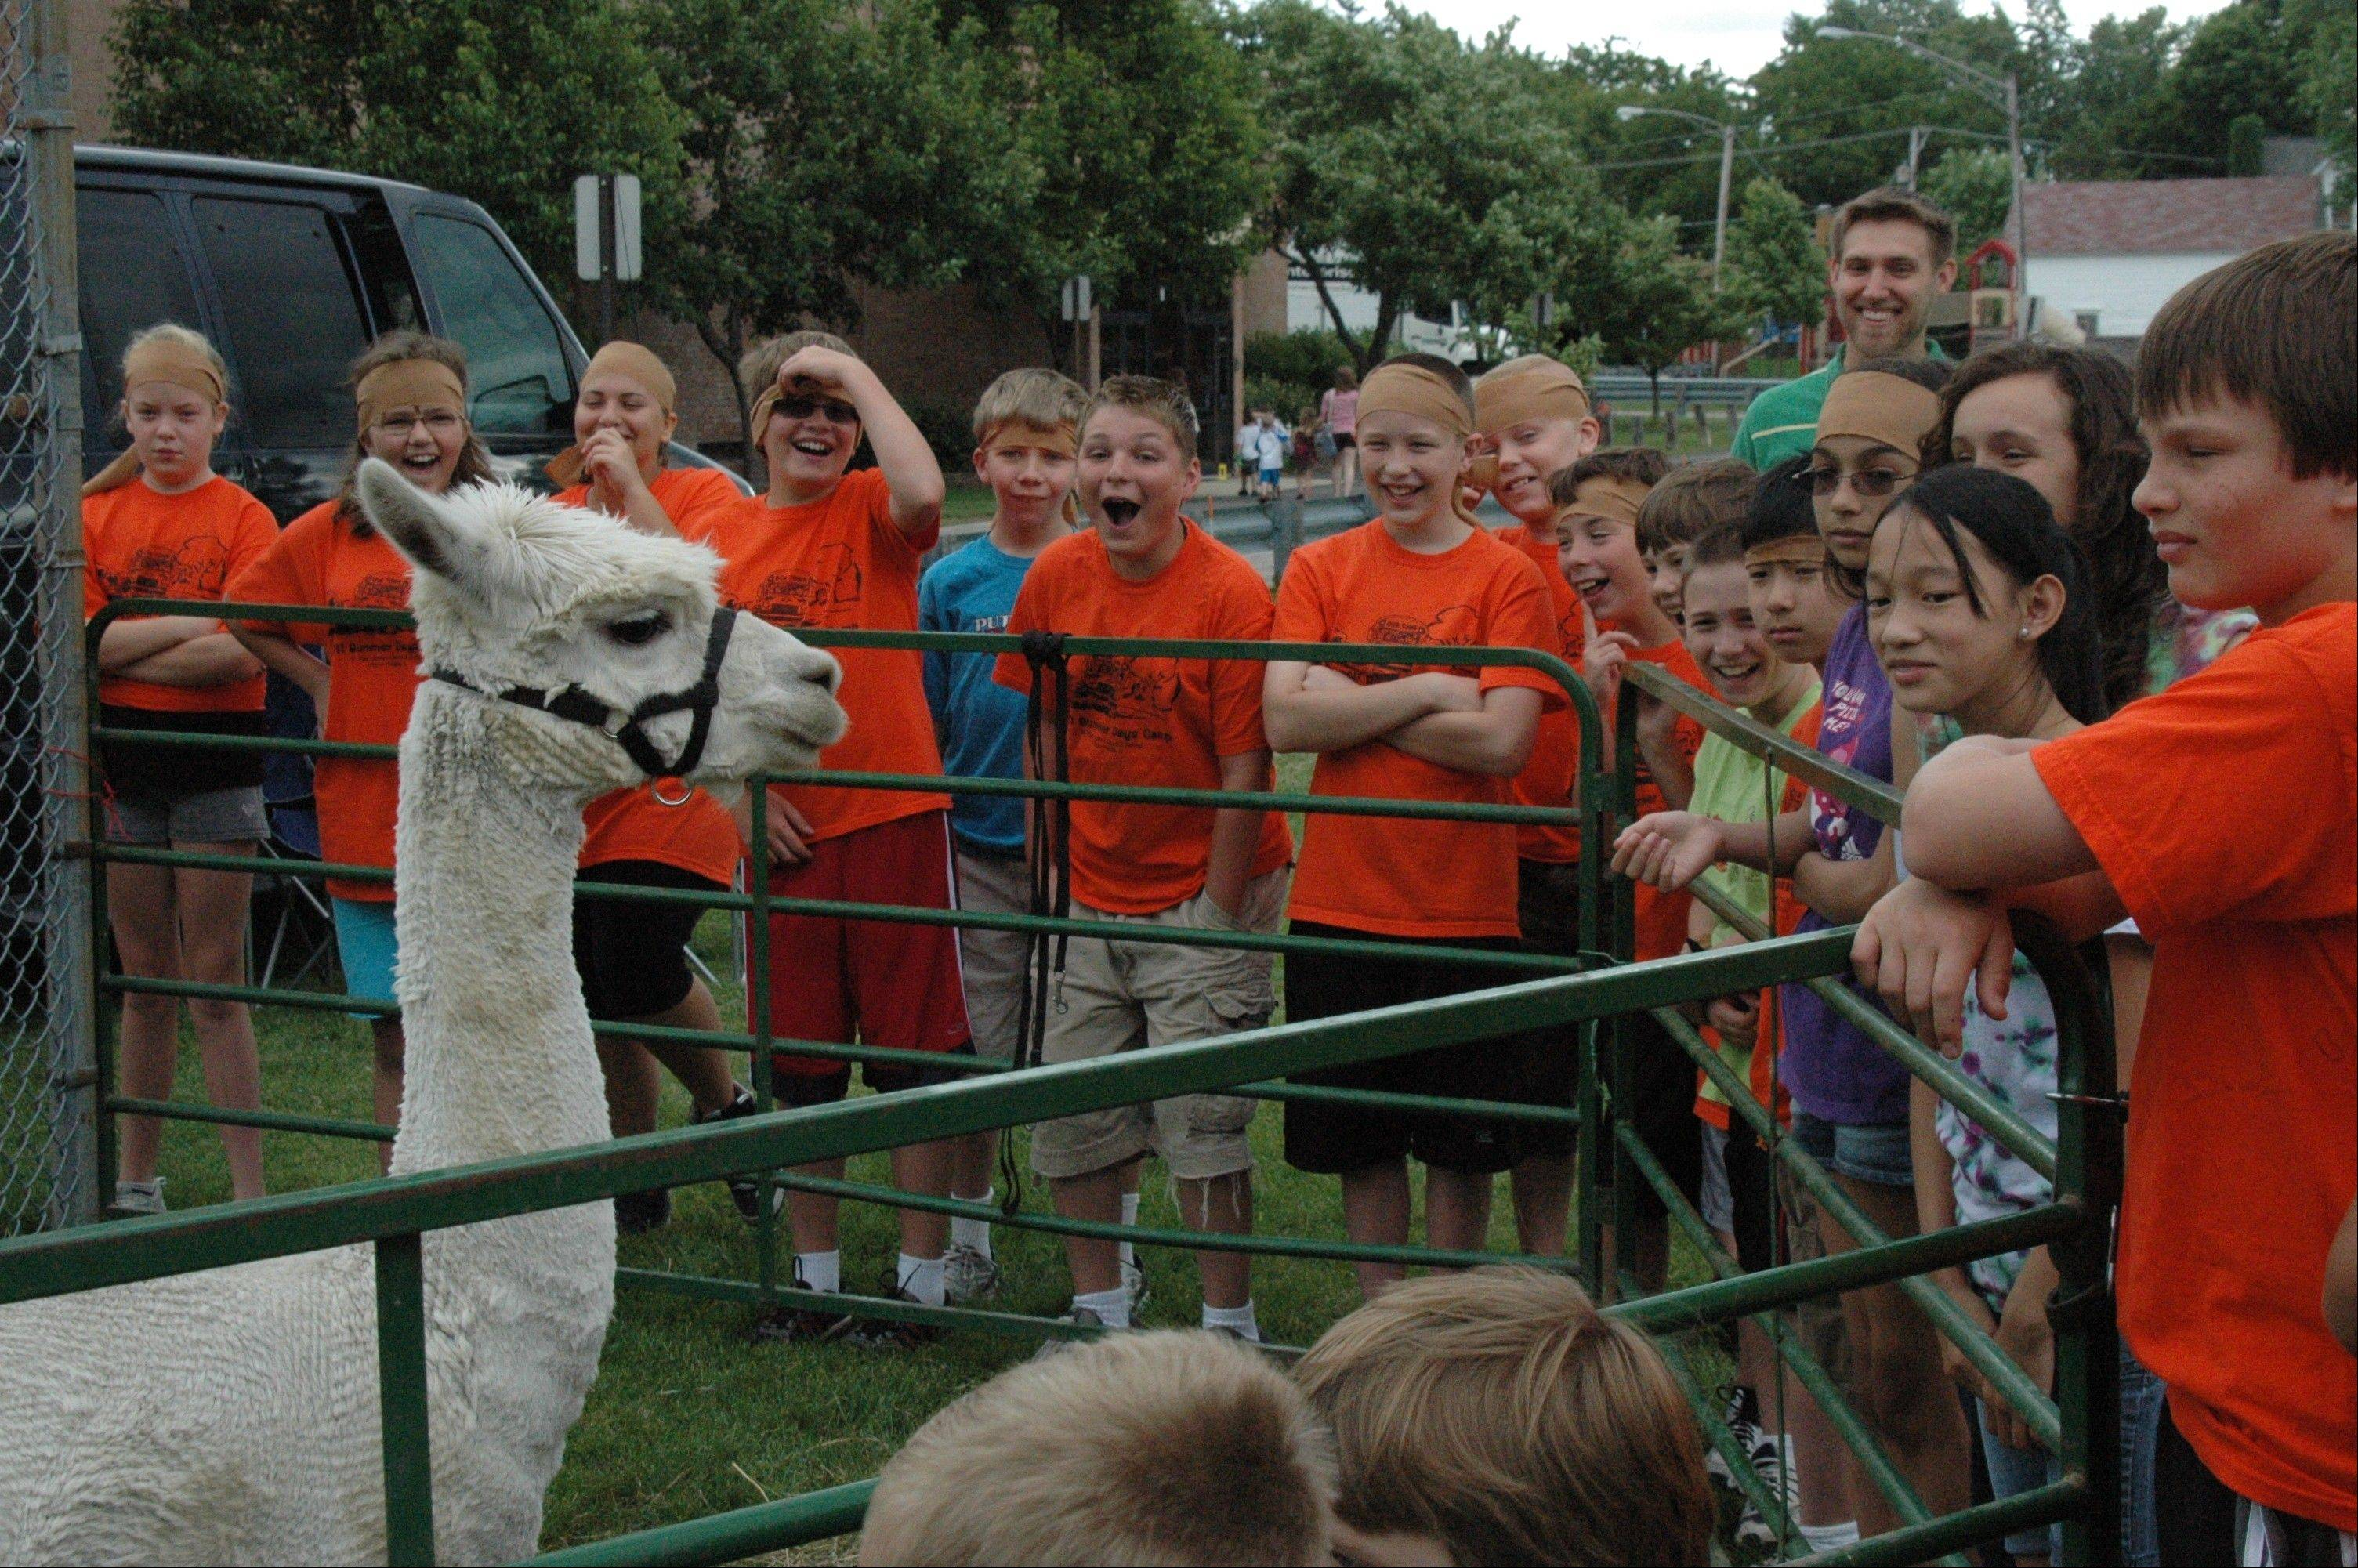 Children saw live alpacas and helped clean their sheared fiber and felted real lambs' wool during the Hometown Nazareth vacation Bible school at St. Peter Lutheran School in Arlington Heights.